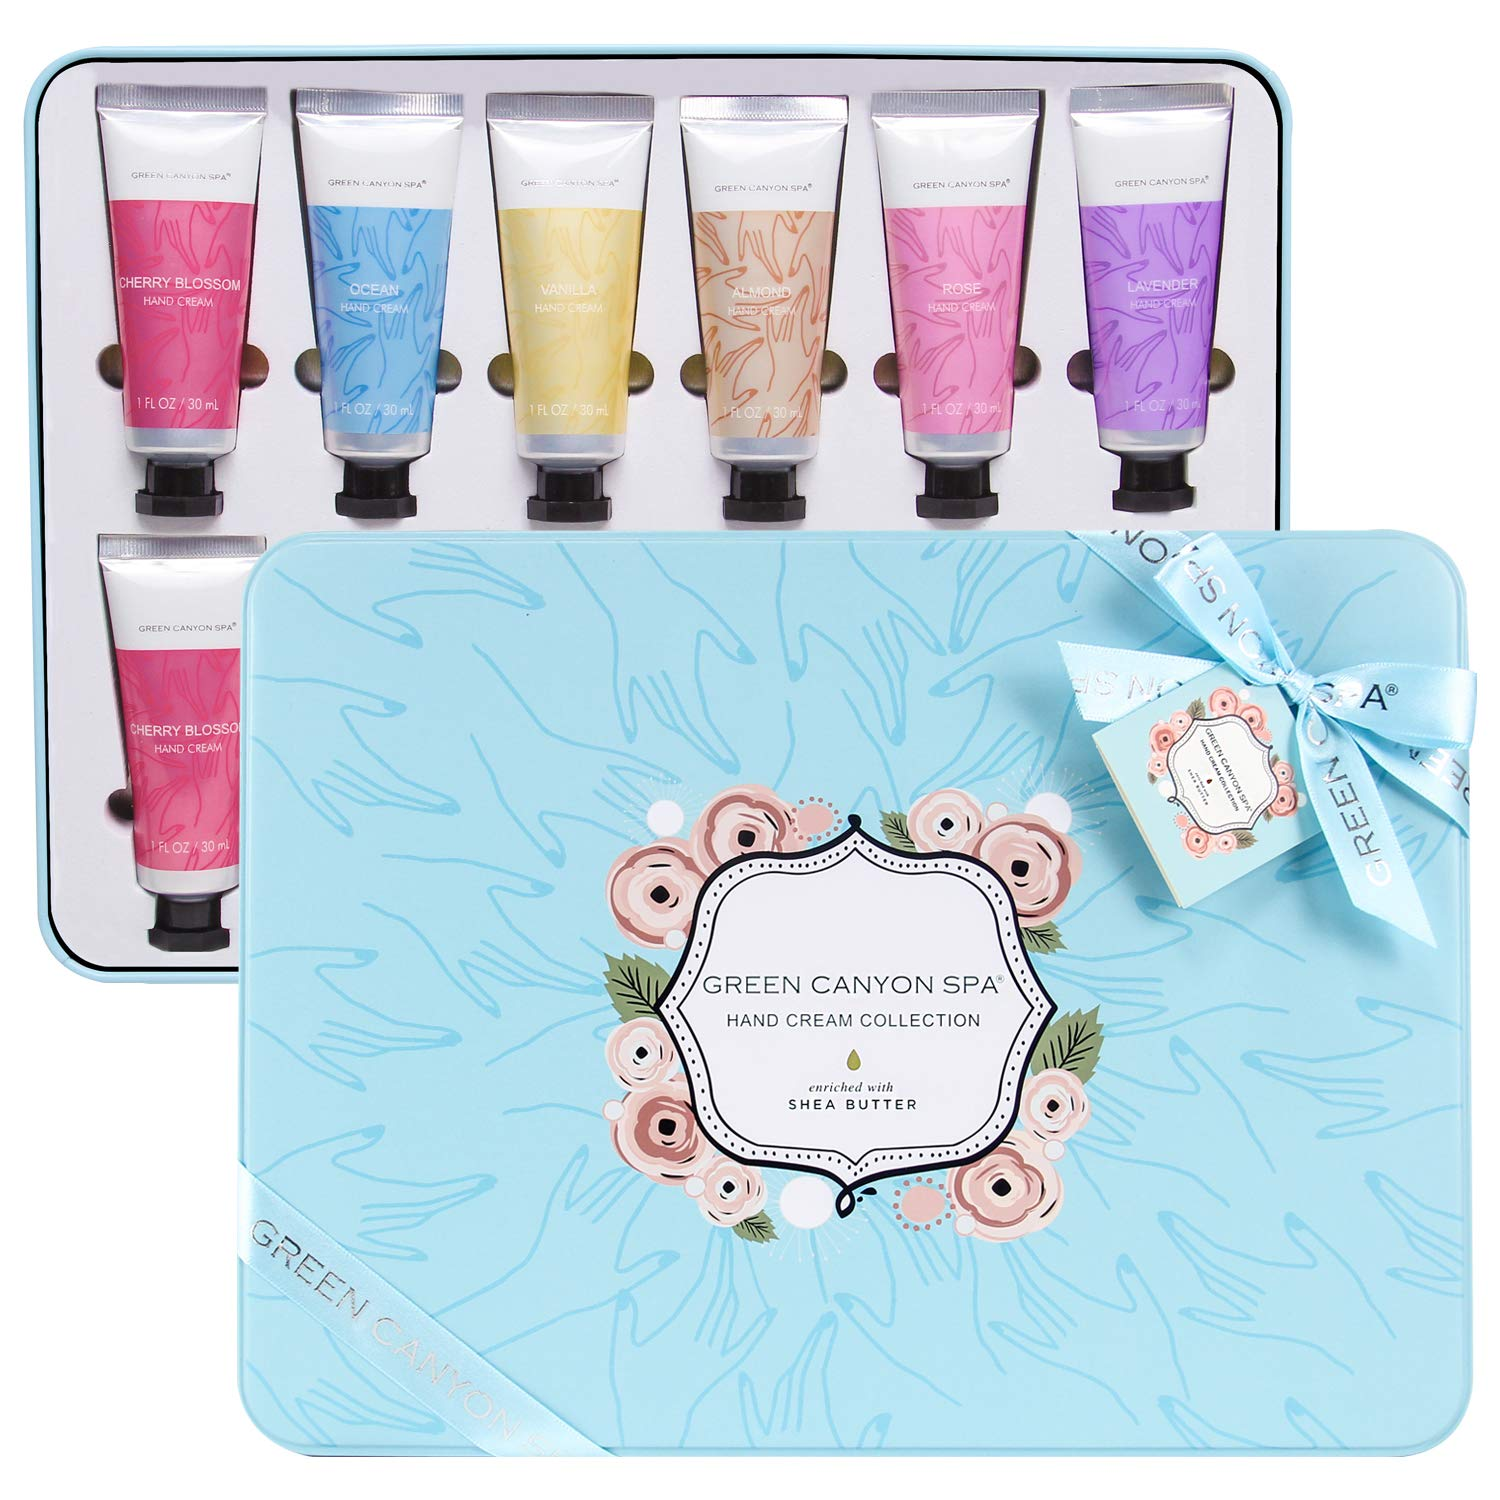 Hand Cream Gift Set, Shea Butter Hand Cream for Women Gift Set, Moisturizing Hand Lotion for Dry Hands Best Birthday/Holiday Gift for Her, Pack of 12 with Travel size, 1.0 oz Tube : Beauty